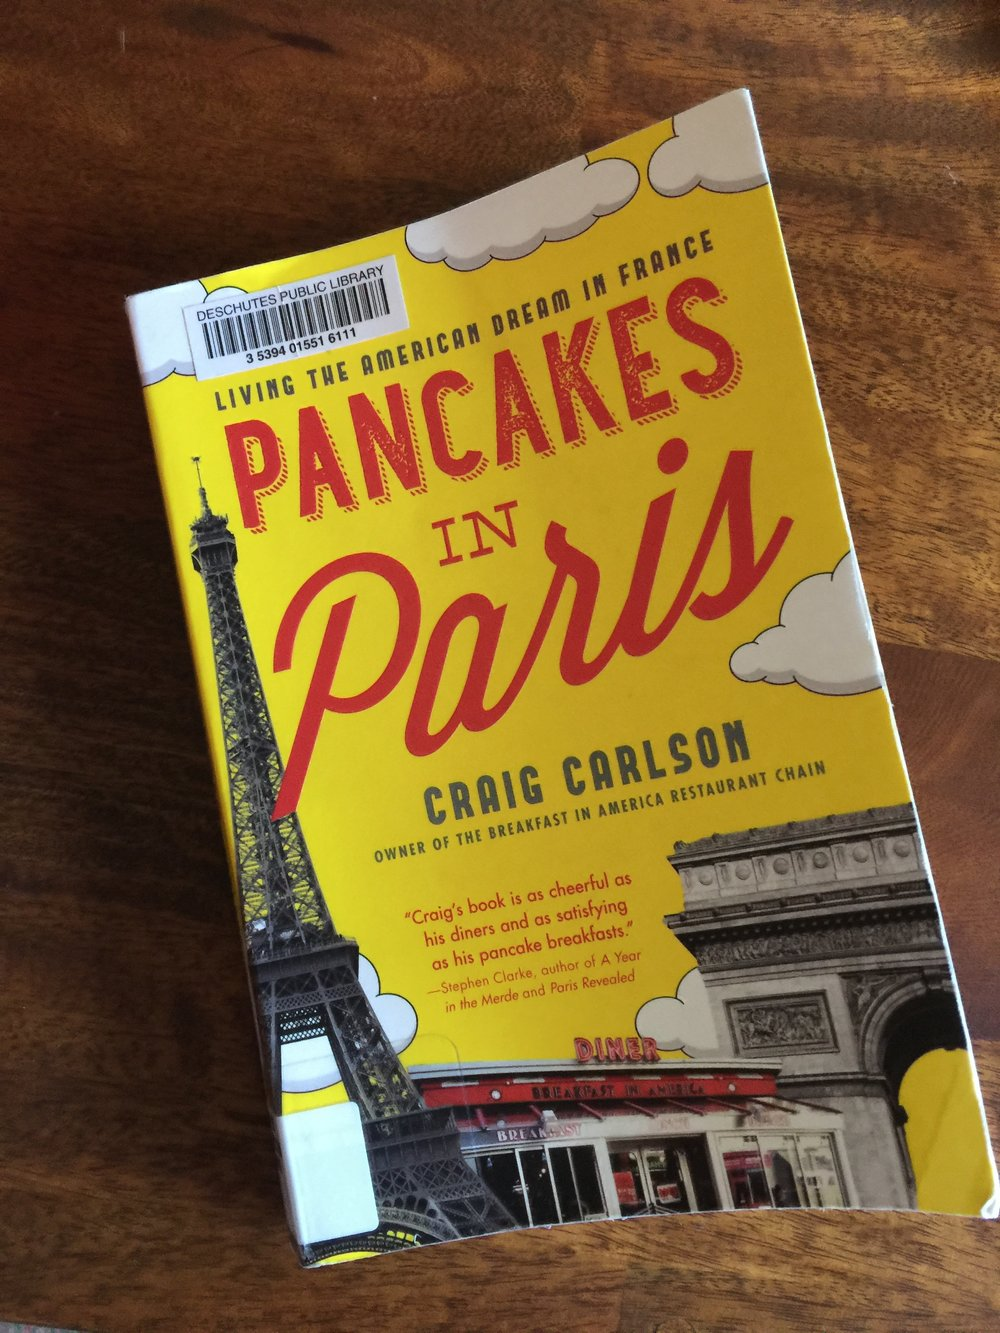 American diner pancakes drip coffee sock juice paris craig carlson book review